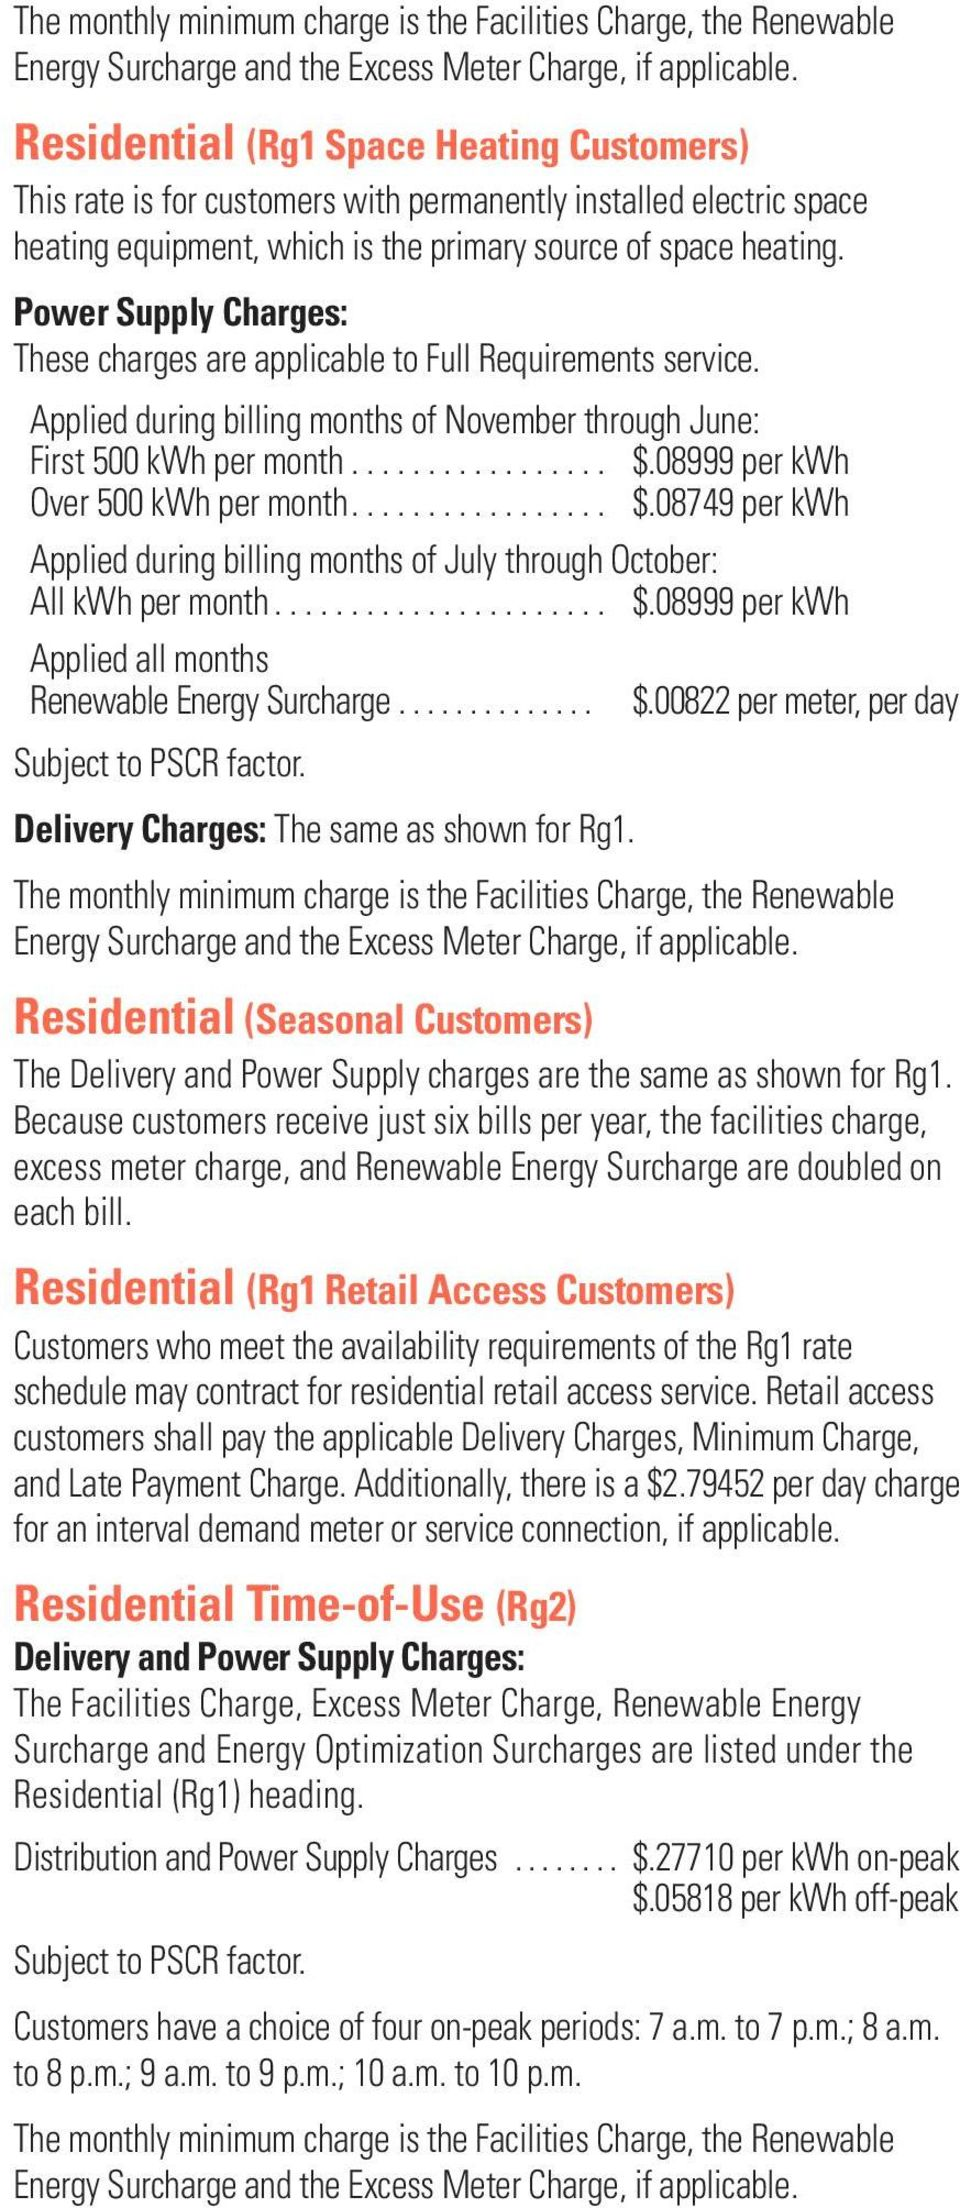 Power Supply Charges: These charges are applicable to Full Requirements service. Applied during billing months of November through June: First 500 kwh per month... $.